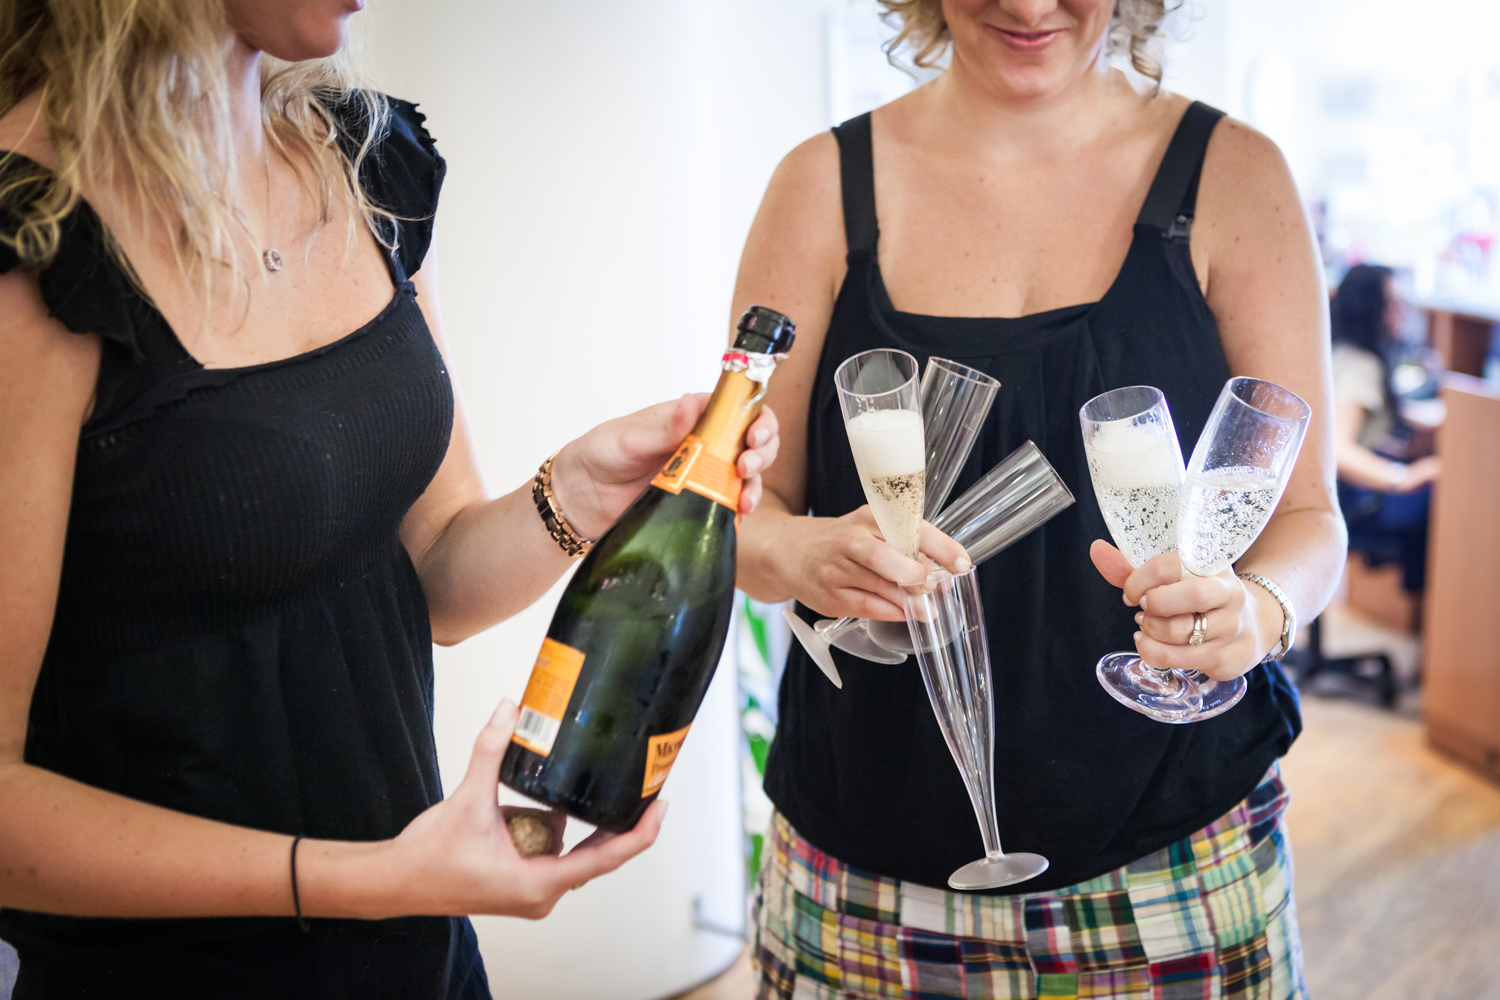 Close up on bridesmaids holding champagne bottle and many champagne glasses